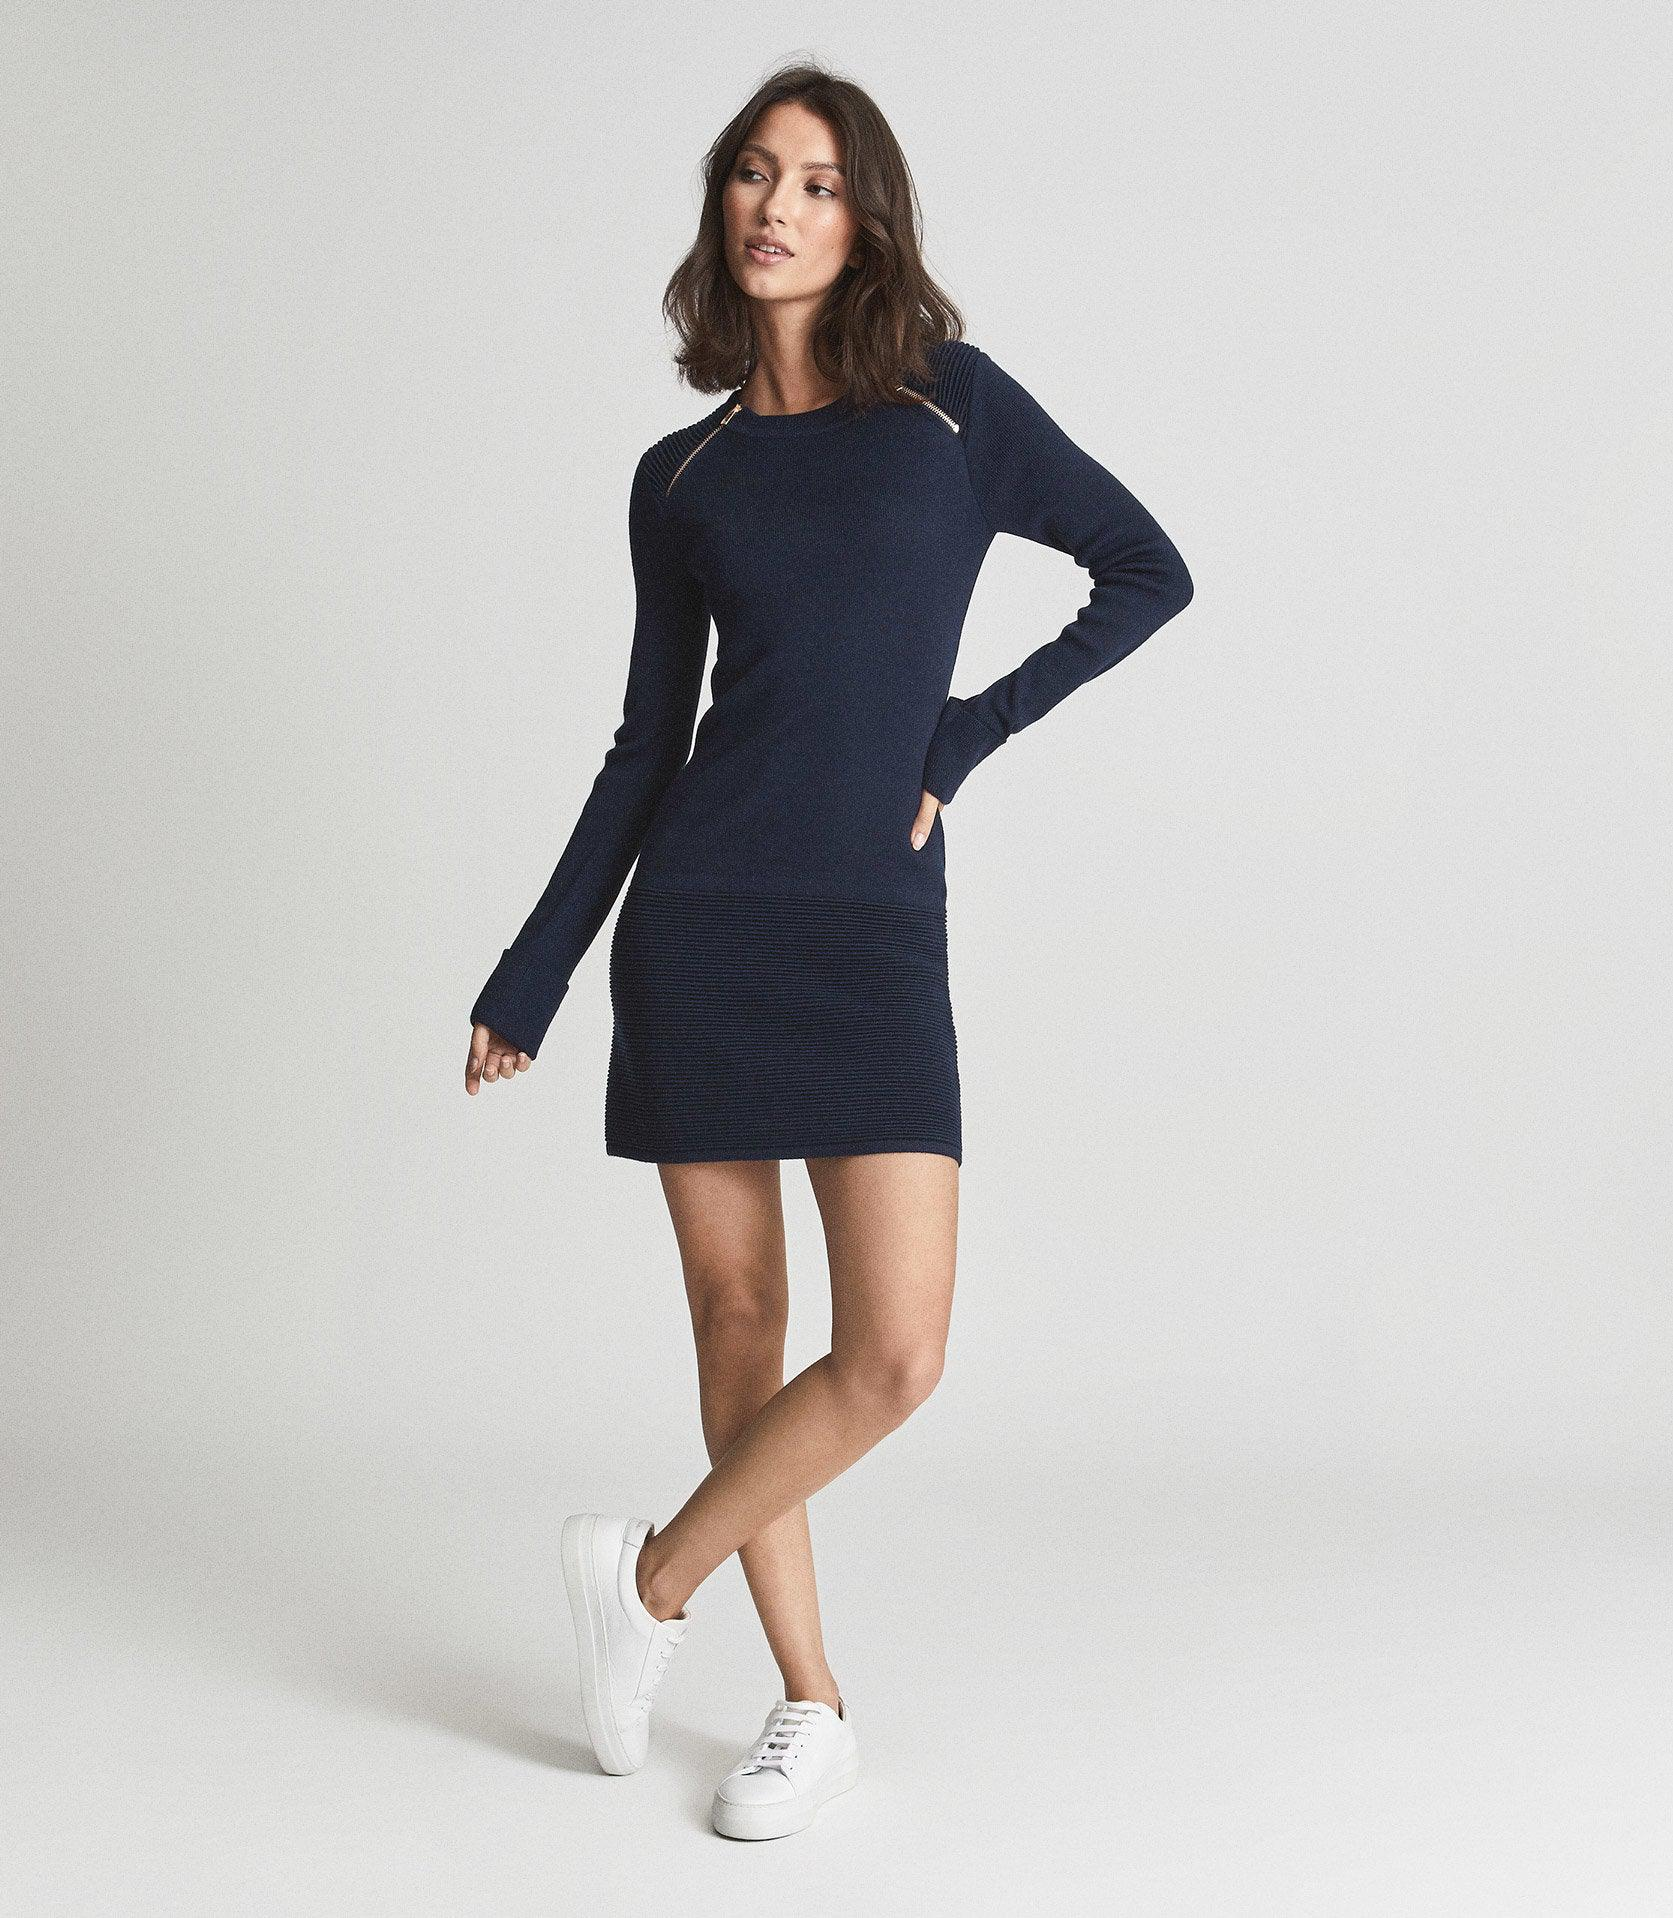 HAYDEN - KNITTED BODYCON DRESS WITH ZIP DETAIL